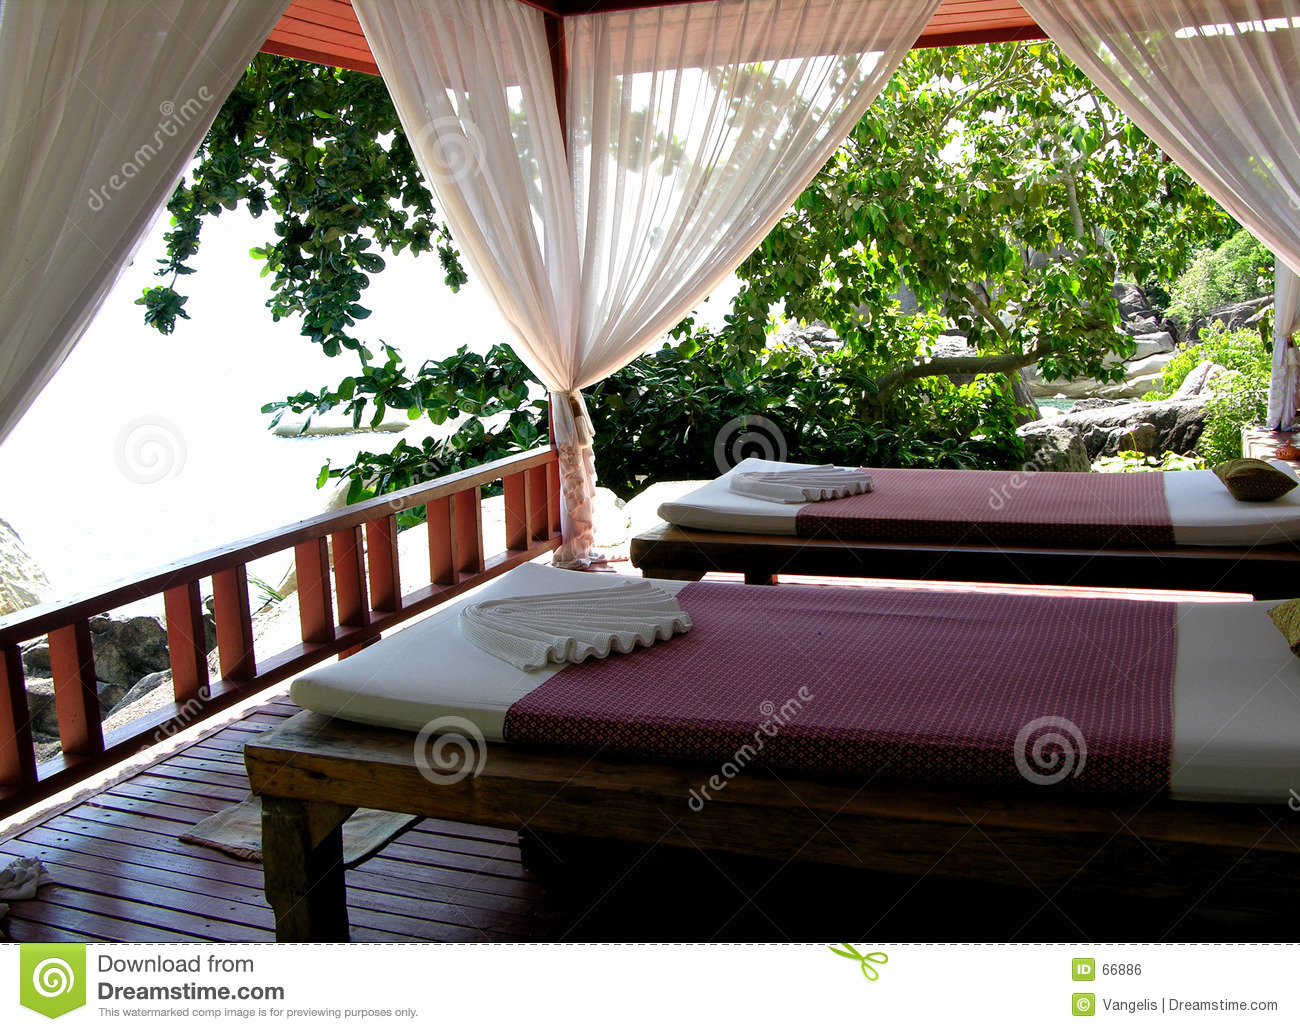 Download Thai Massage Area stock photo. Image of resort, pamper, muscles - 66886